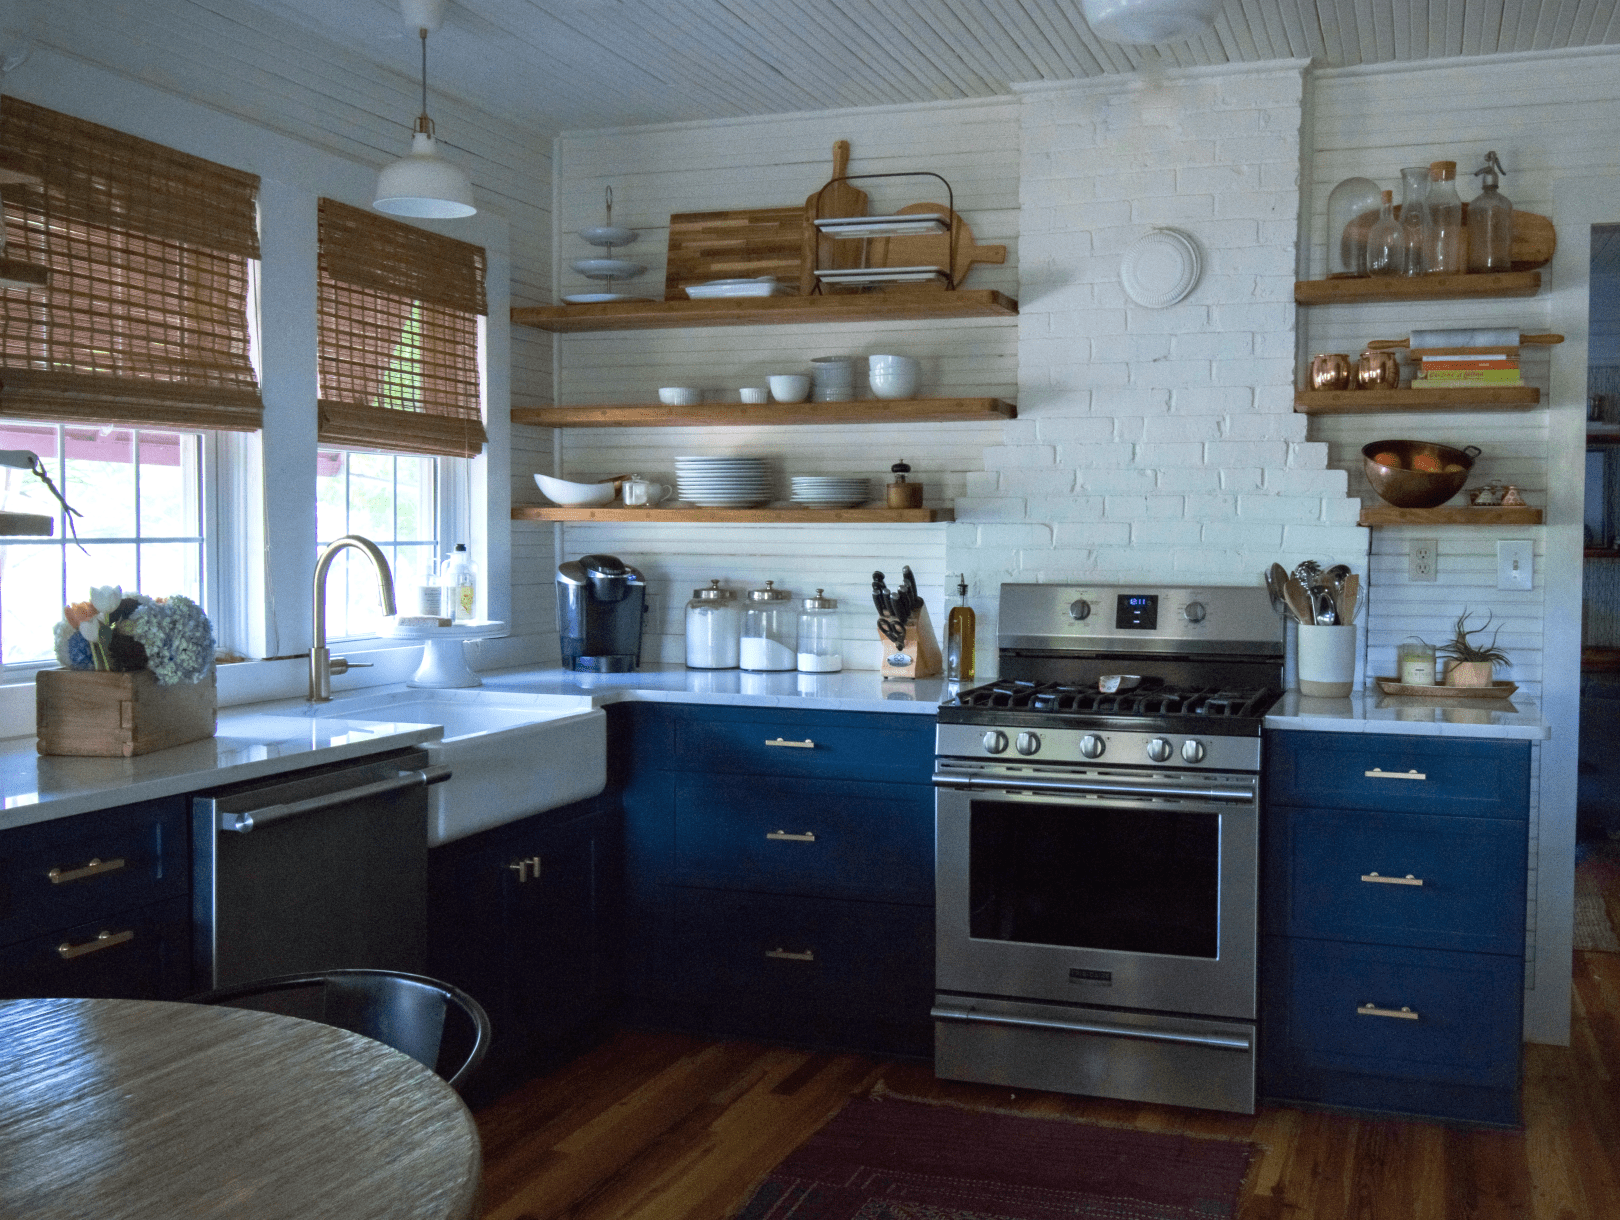 Small Space Living- Kitchen Organizing Tips